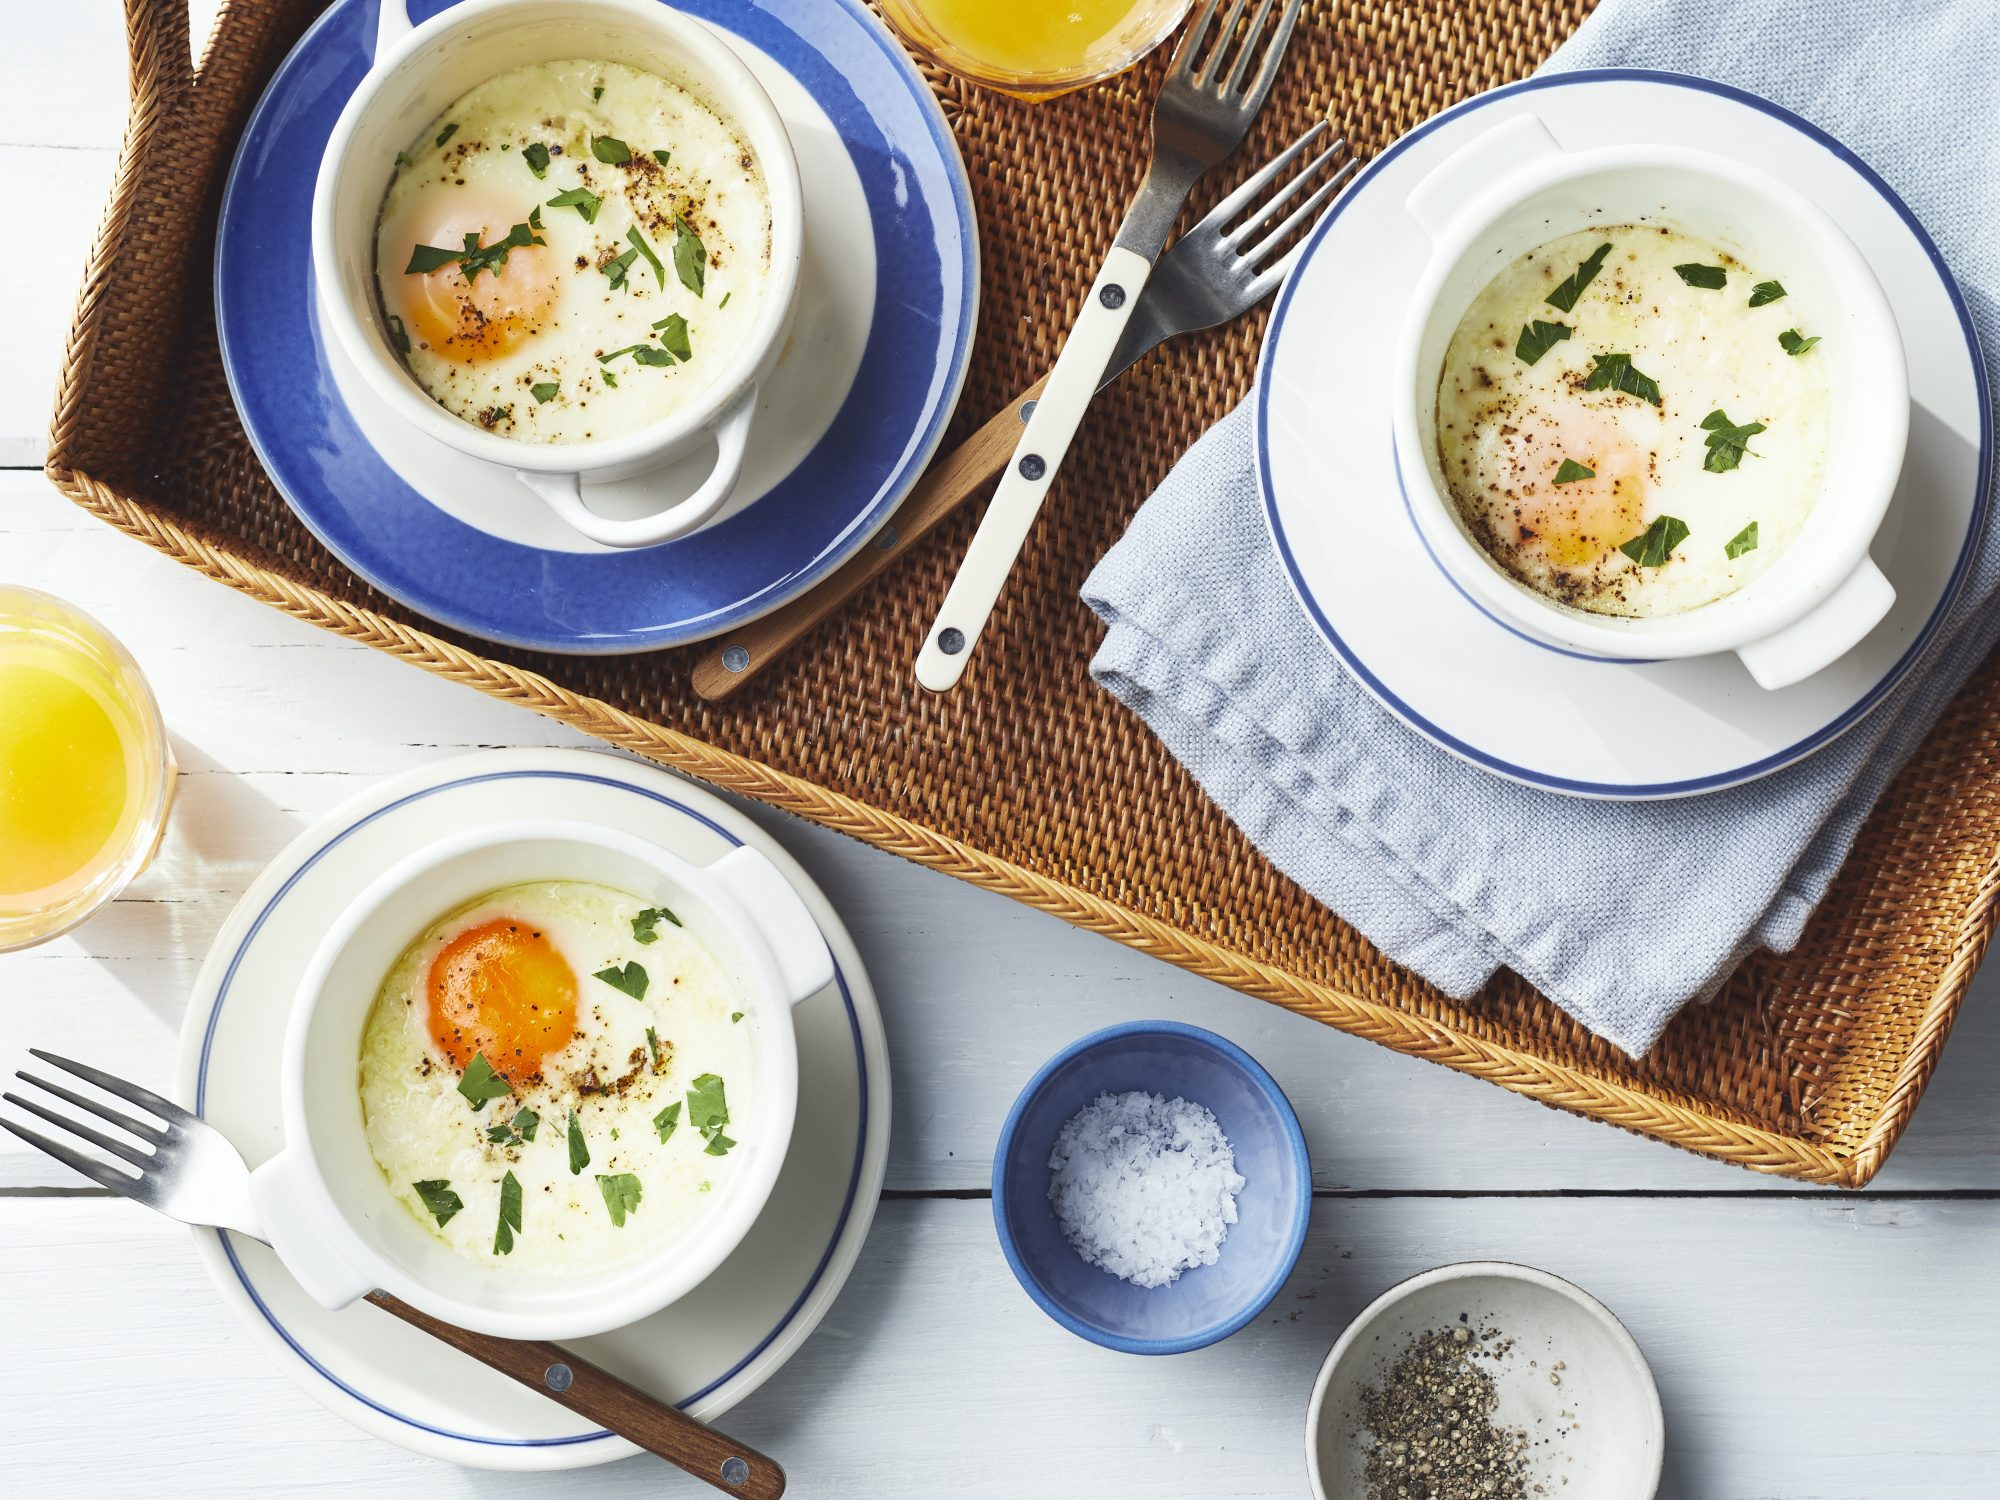 mr-simple-baked-eggs